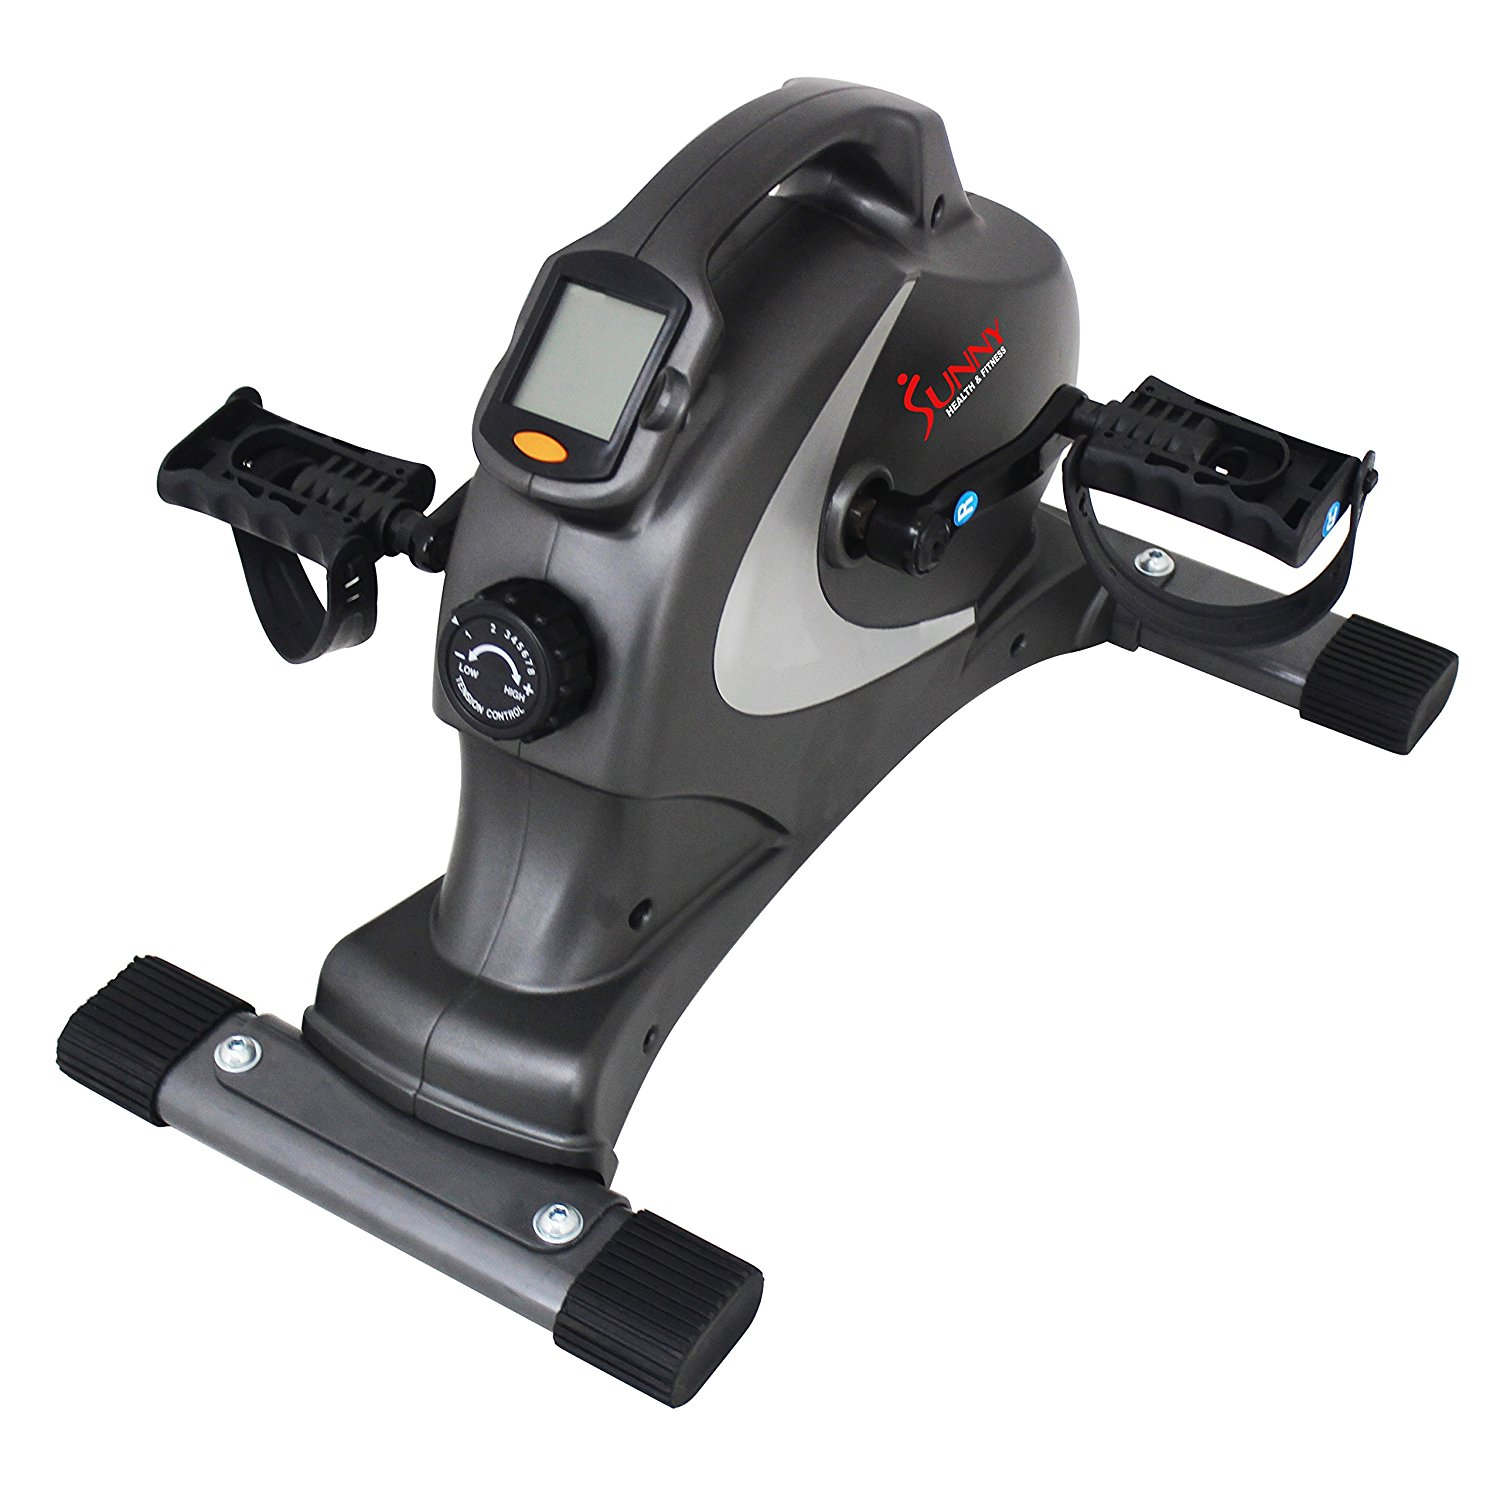 the Sunny Health & Fitness SF-B0418 Magnetic Mini Exercise Bike is shown here